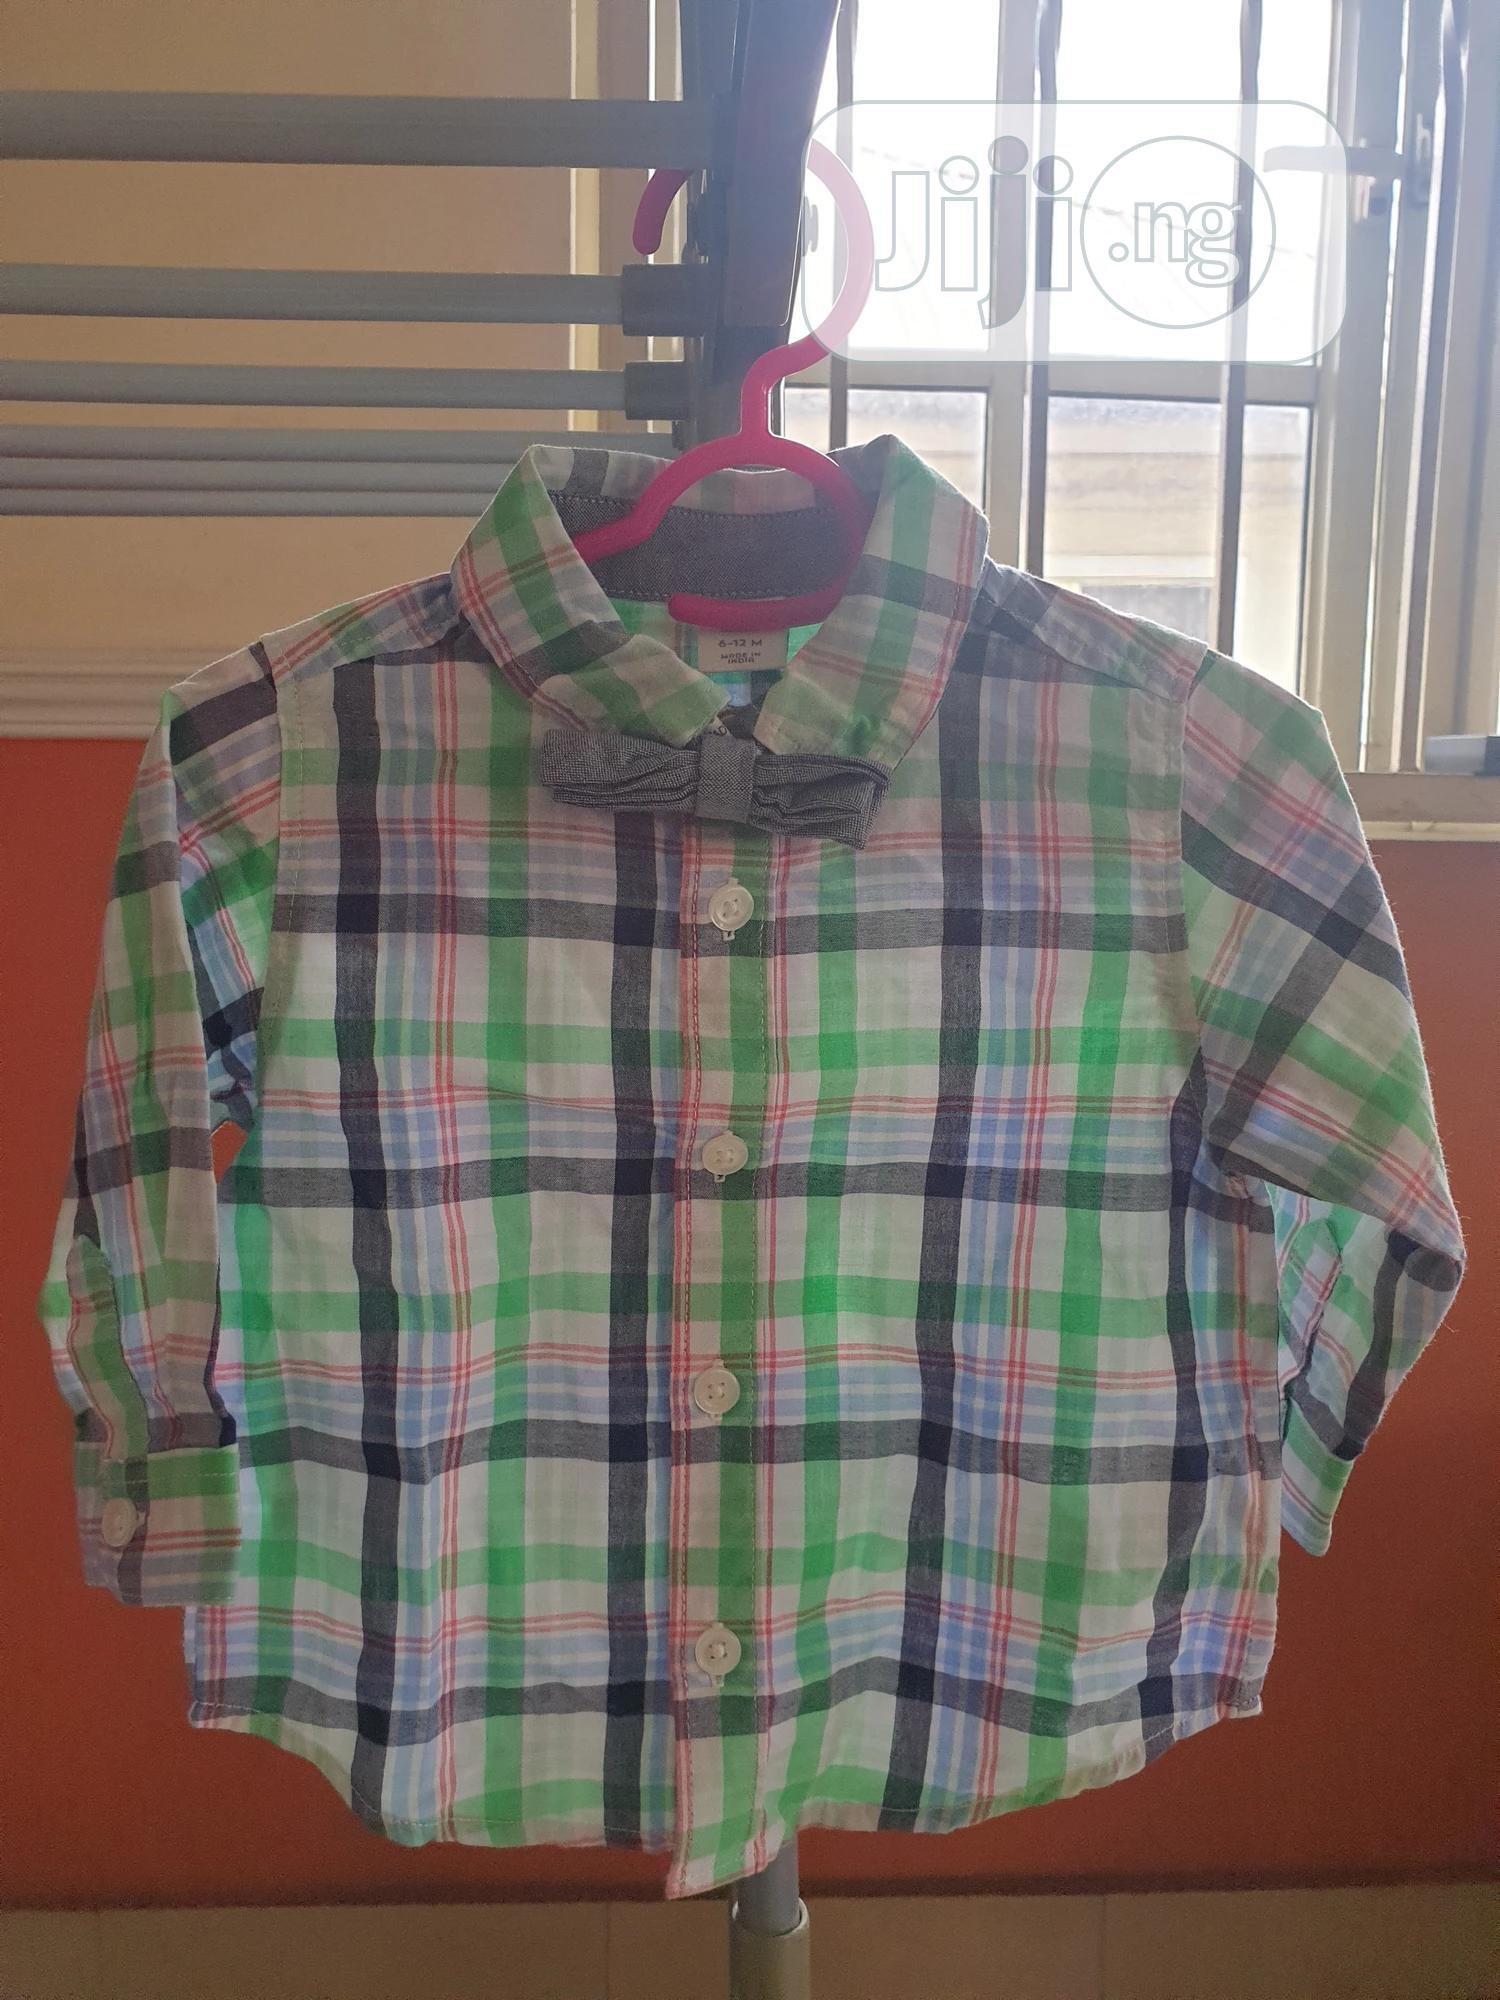 Oshkosh Shirt With Bow Tie